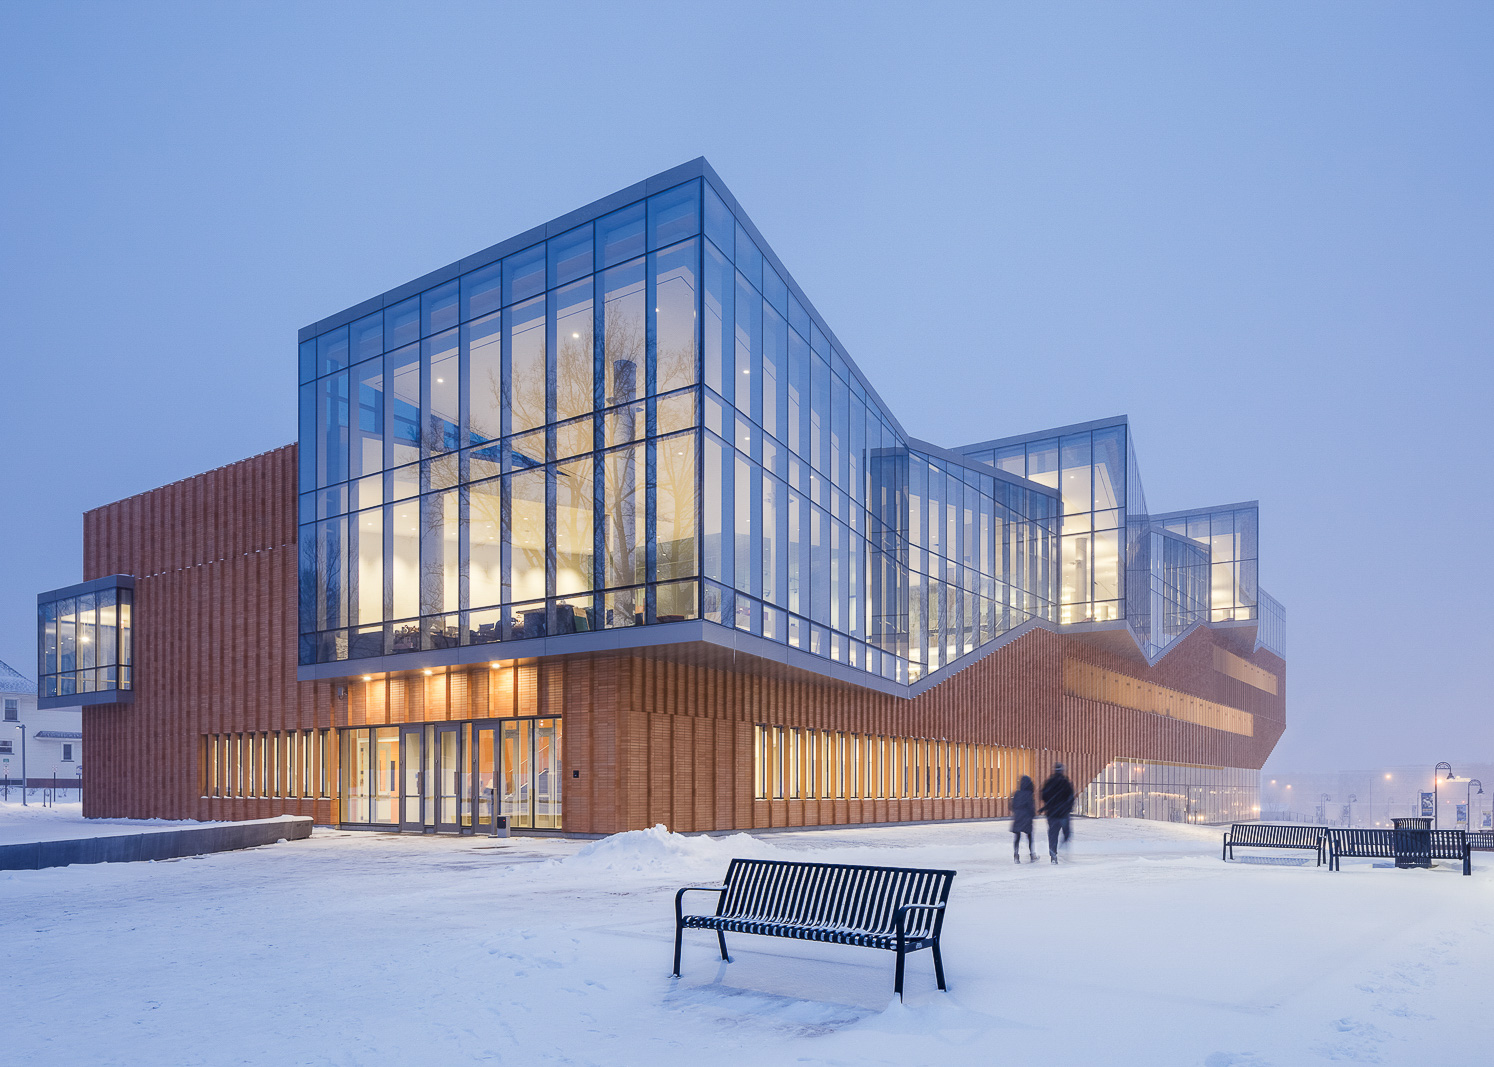 Kent State School of Architecture by Weiss/Manfredi photographed by Brad Feinknopf based in Columbus, Ohio